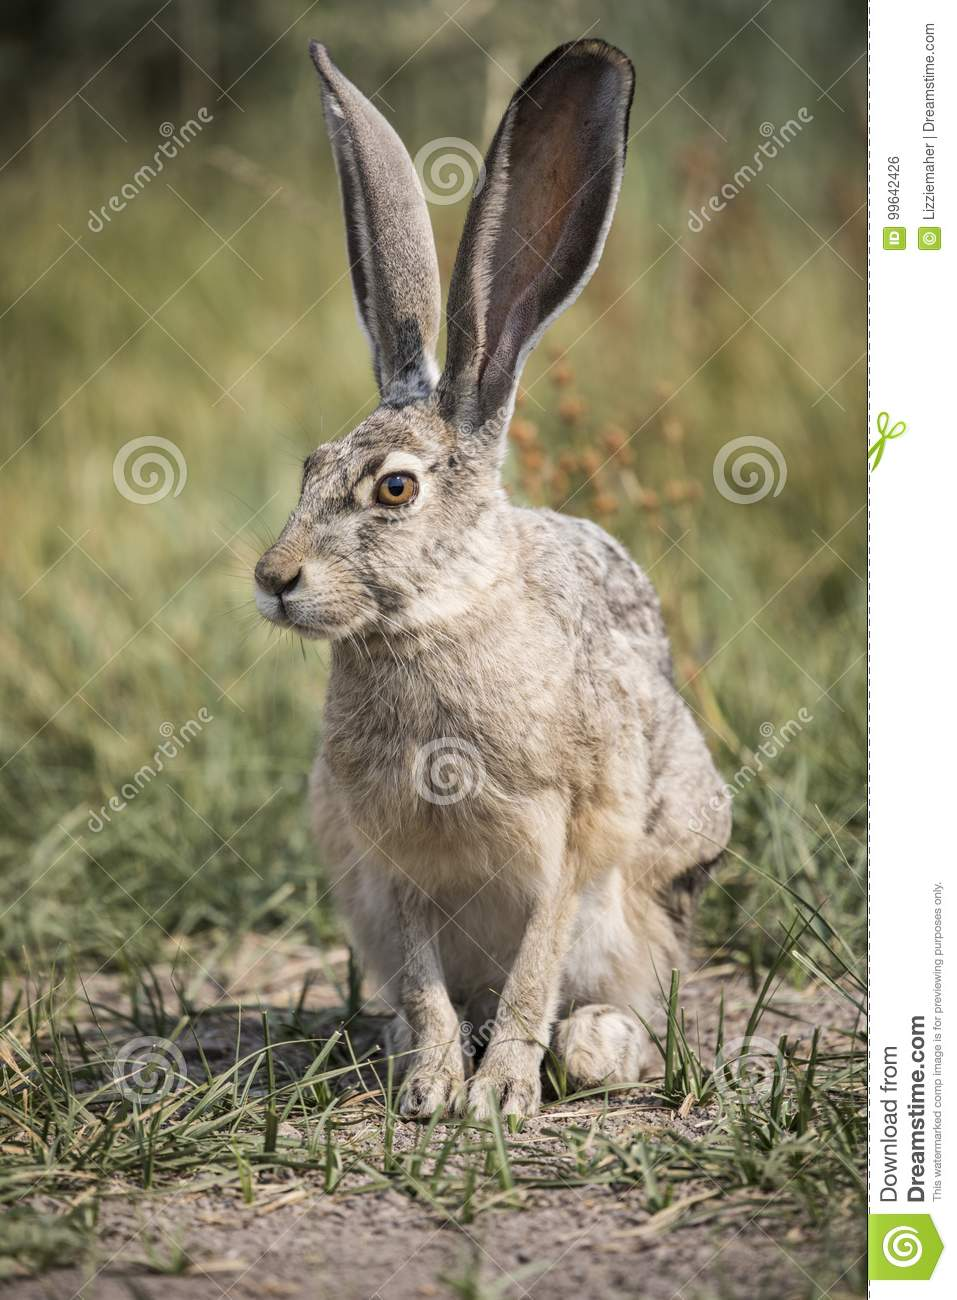 hare download